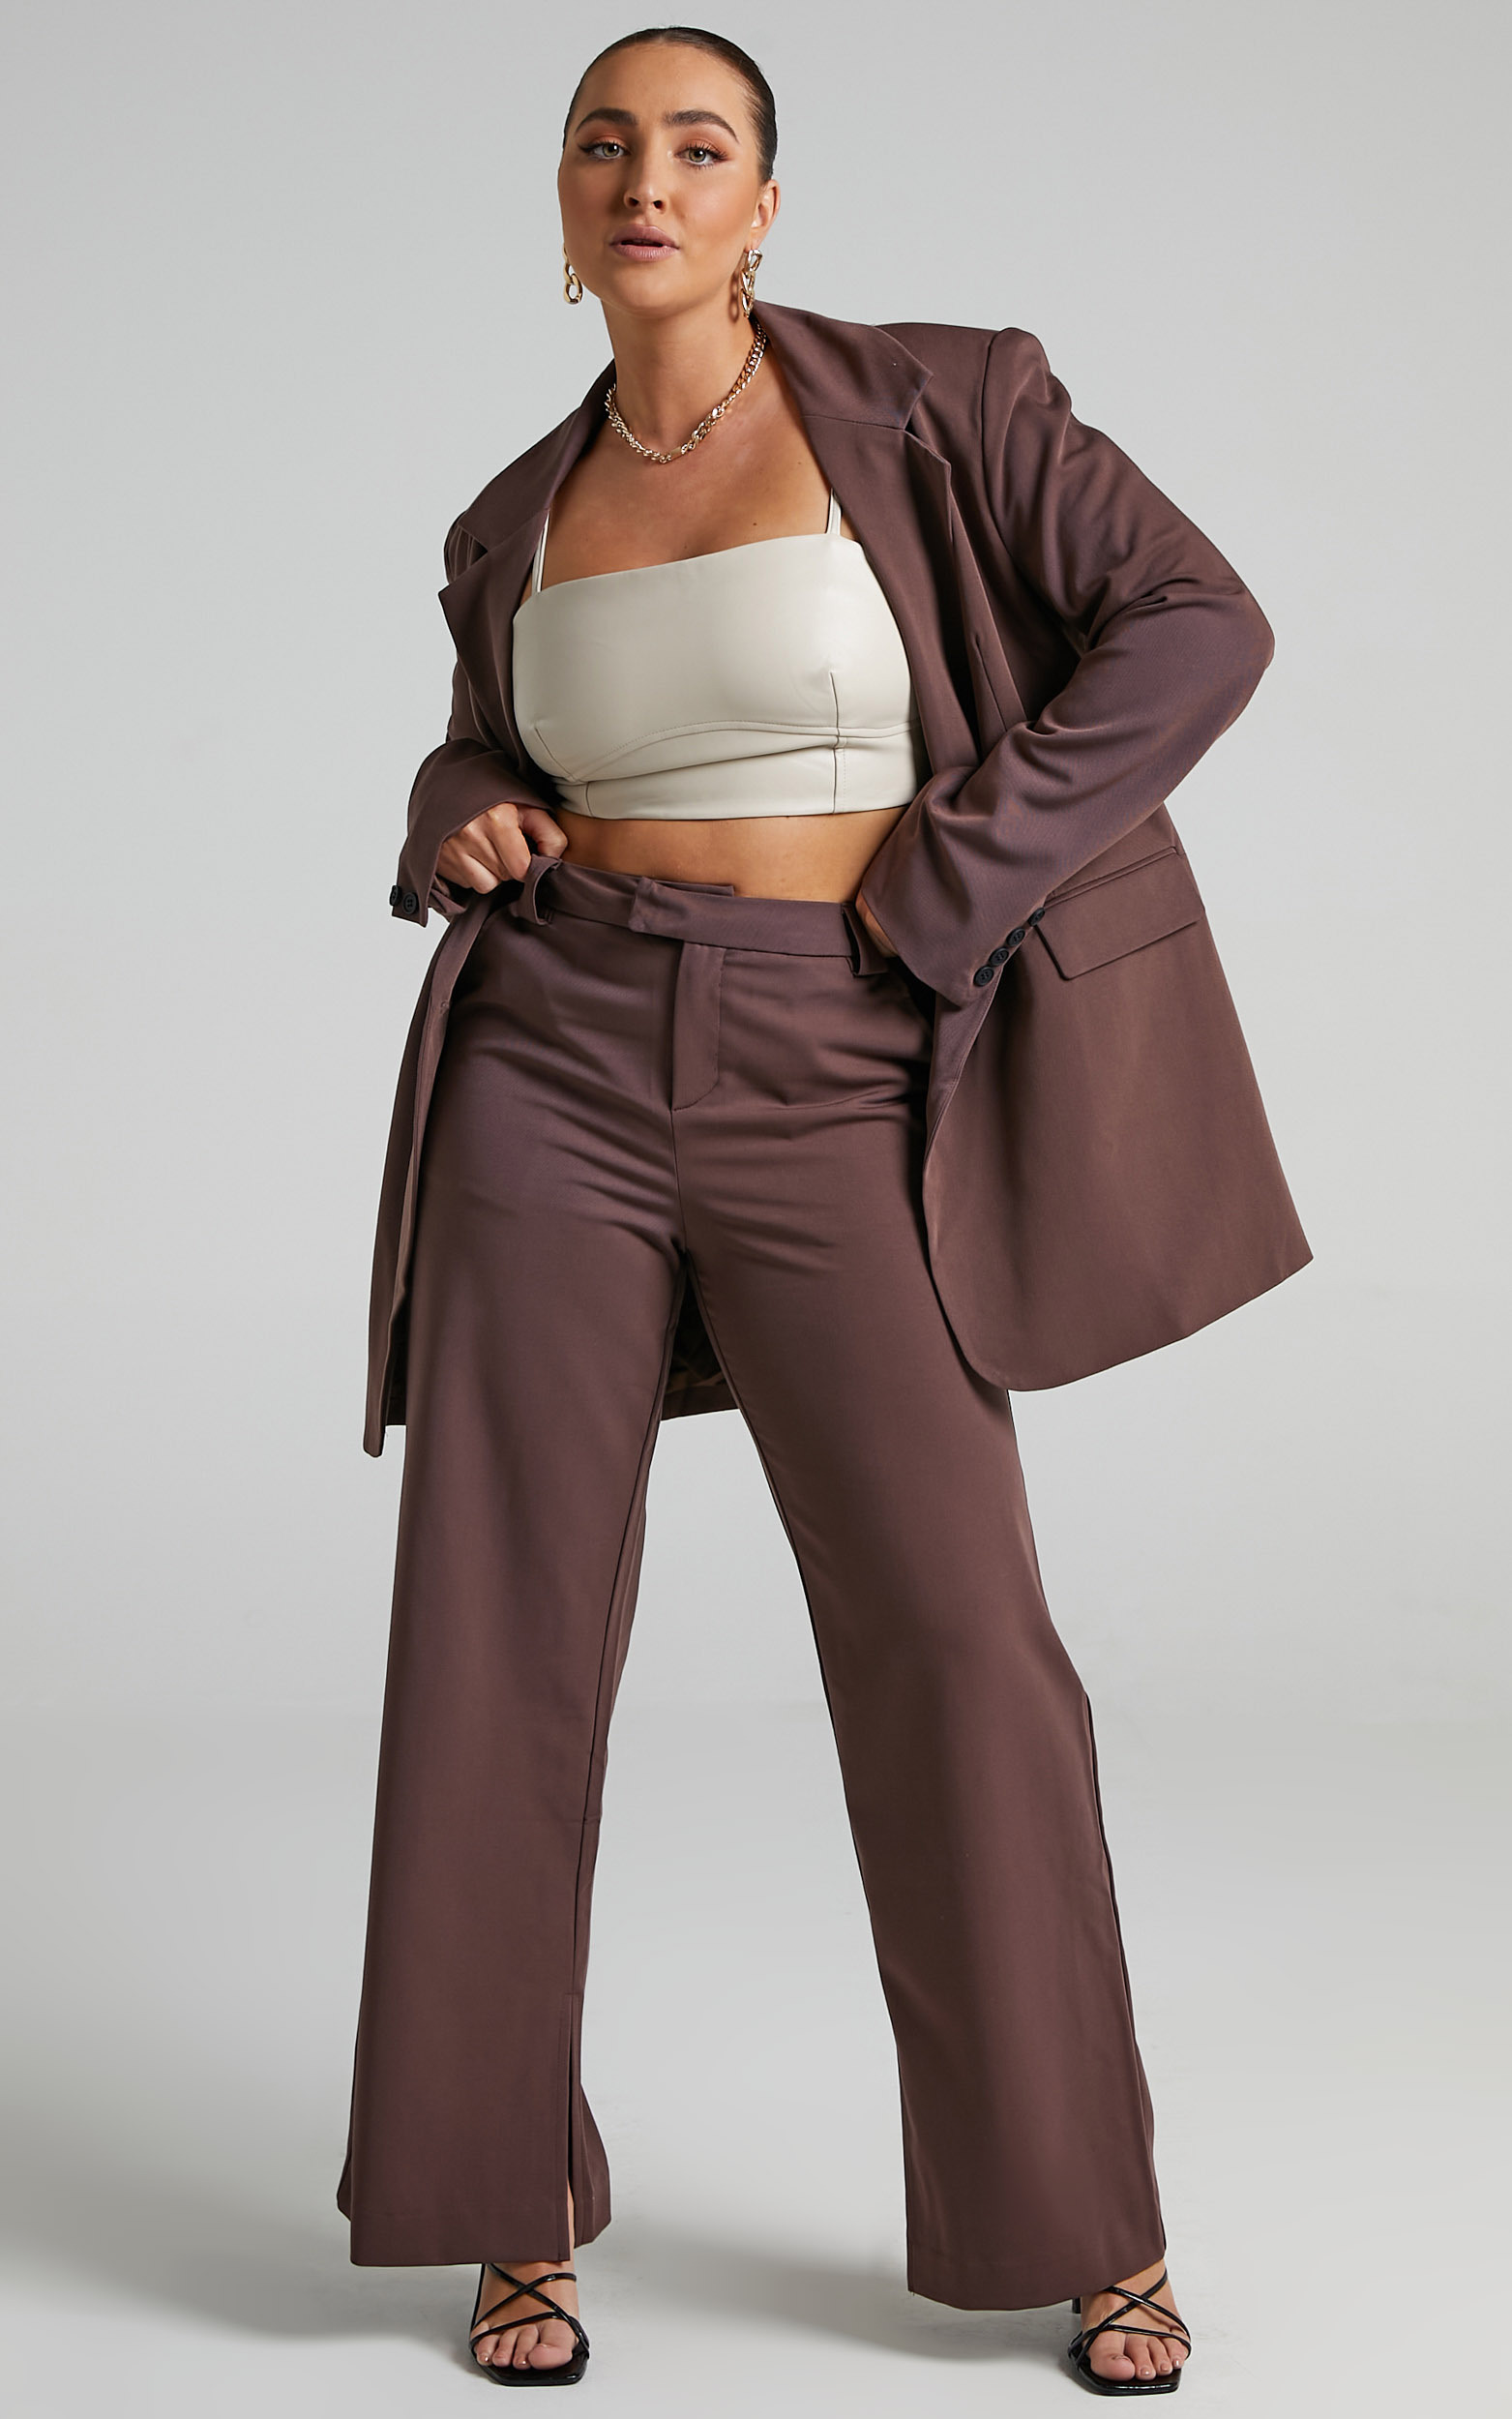 Kitty Oversized Blazer in Chocolate - 04, BRN2, hi-res image number null